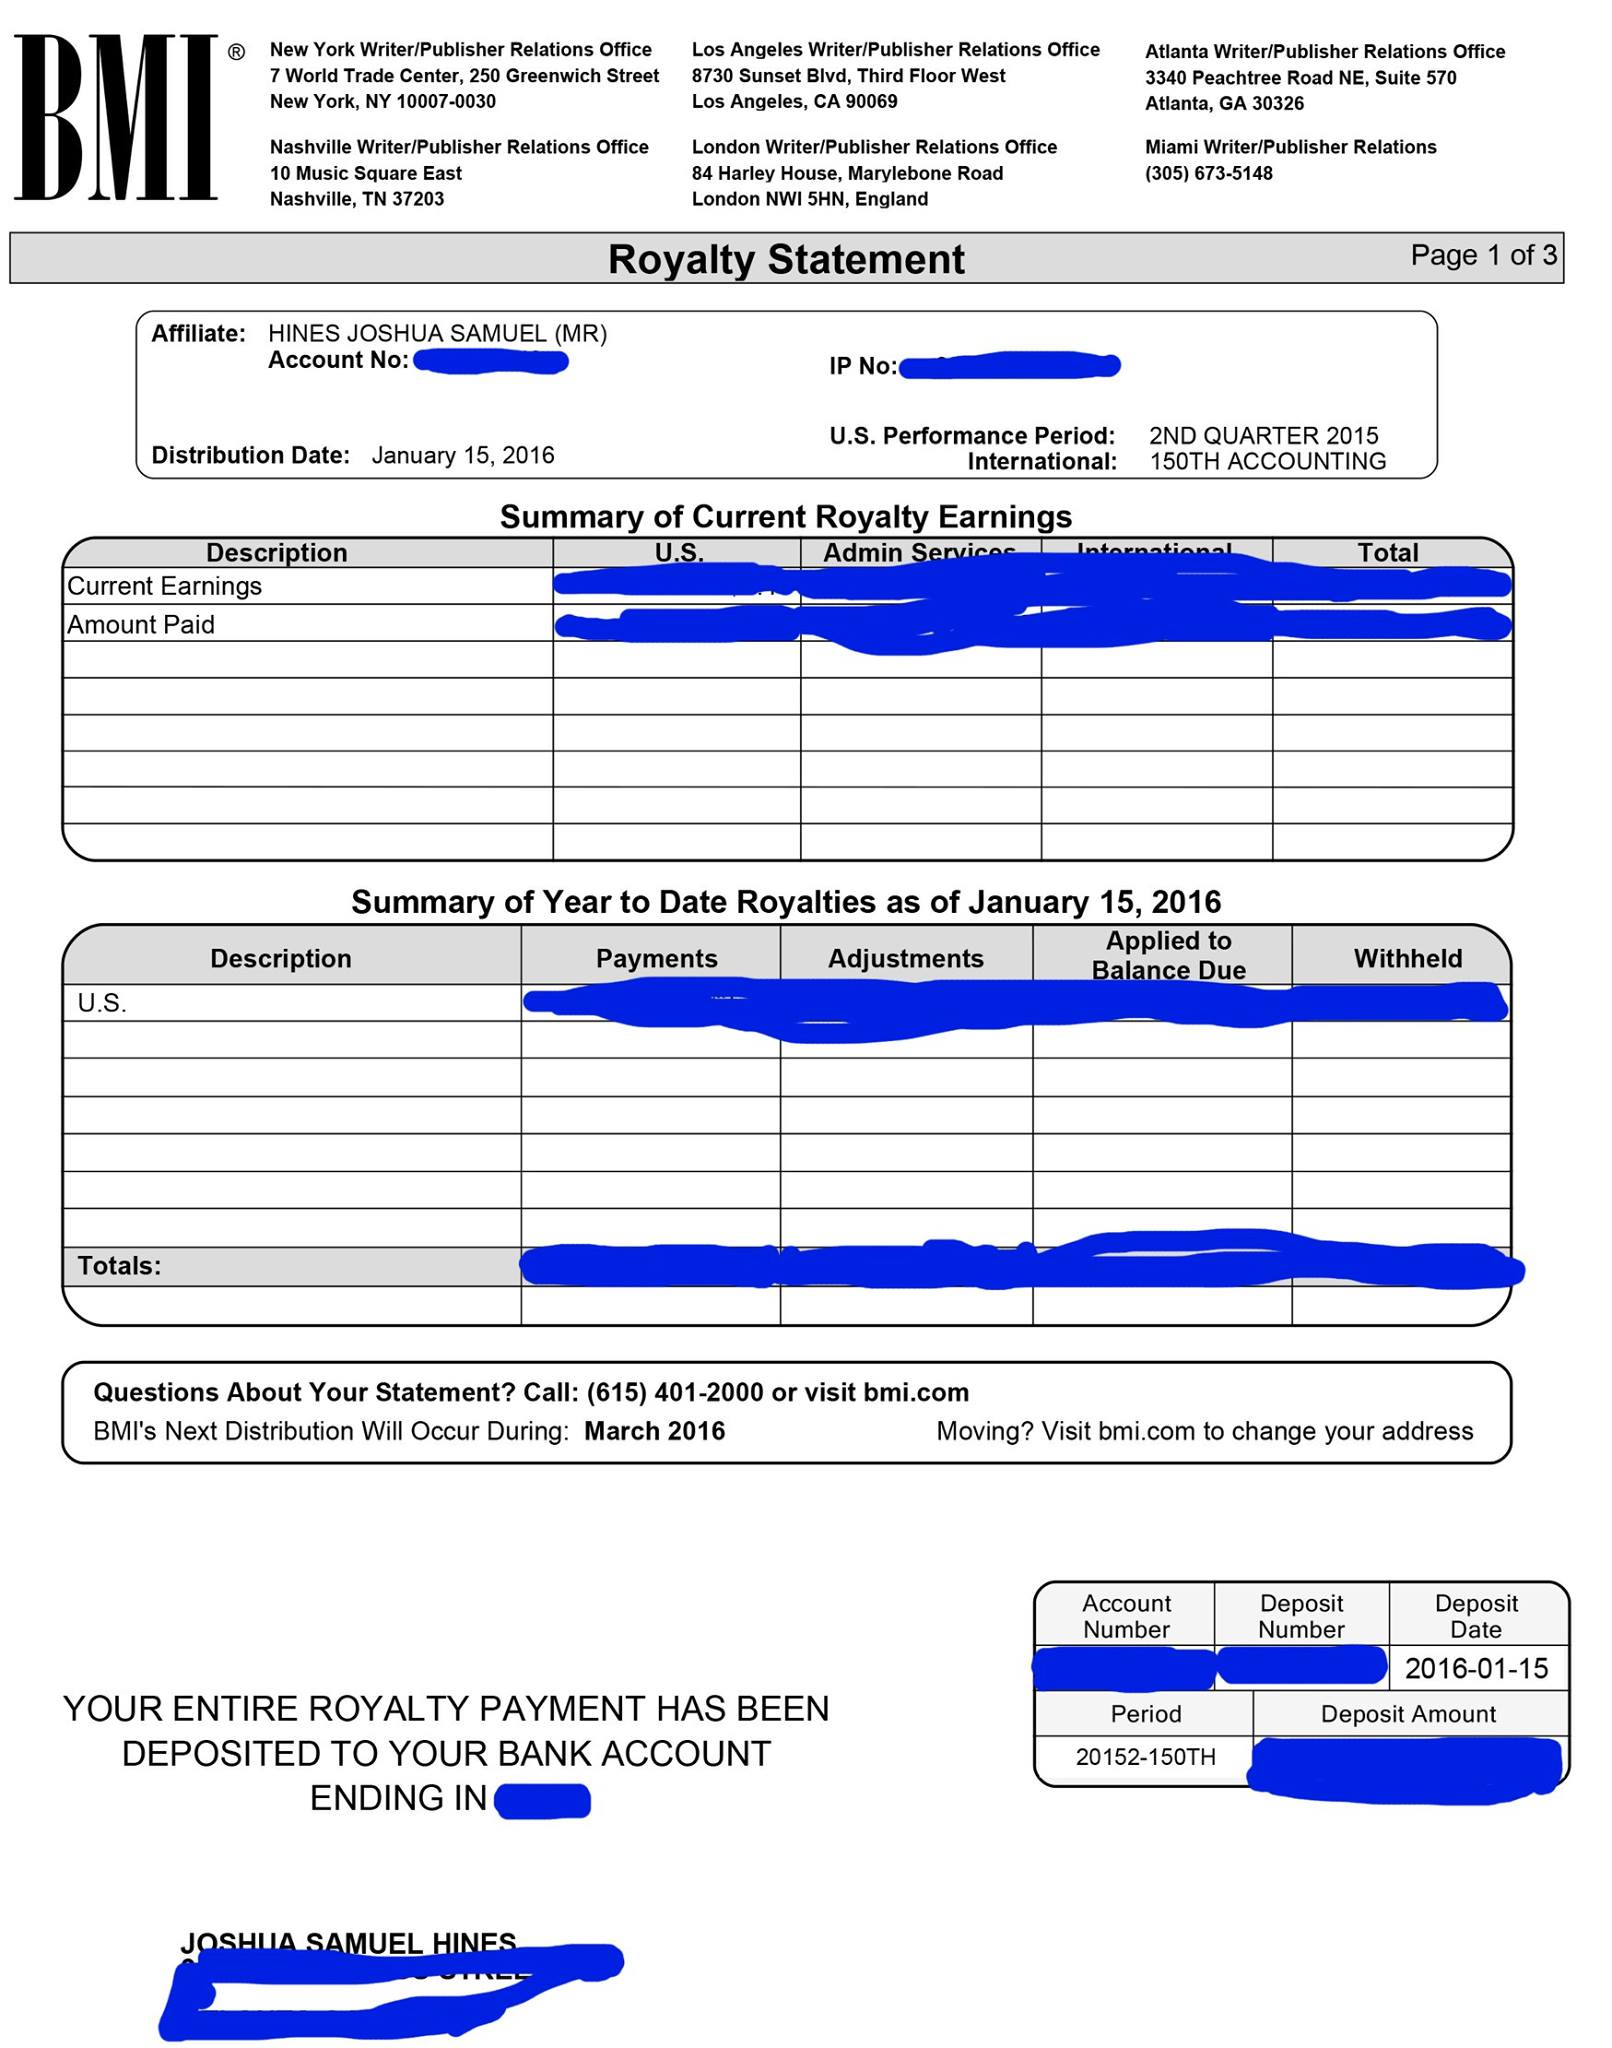 Real royalty statements